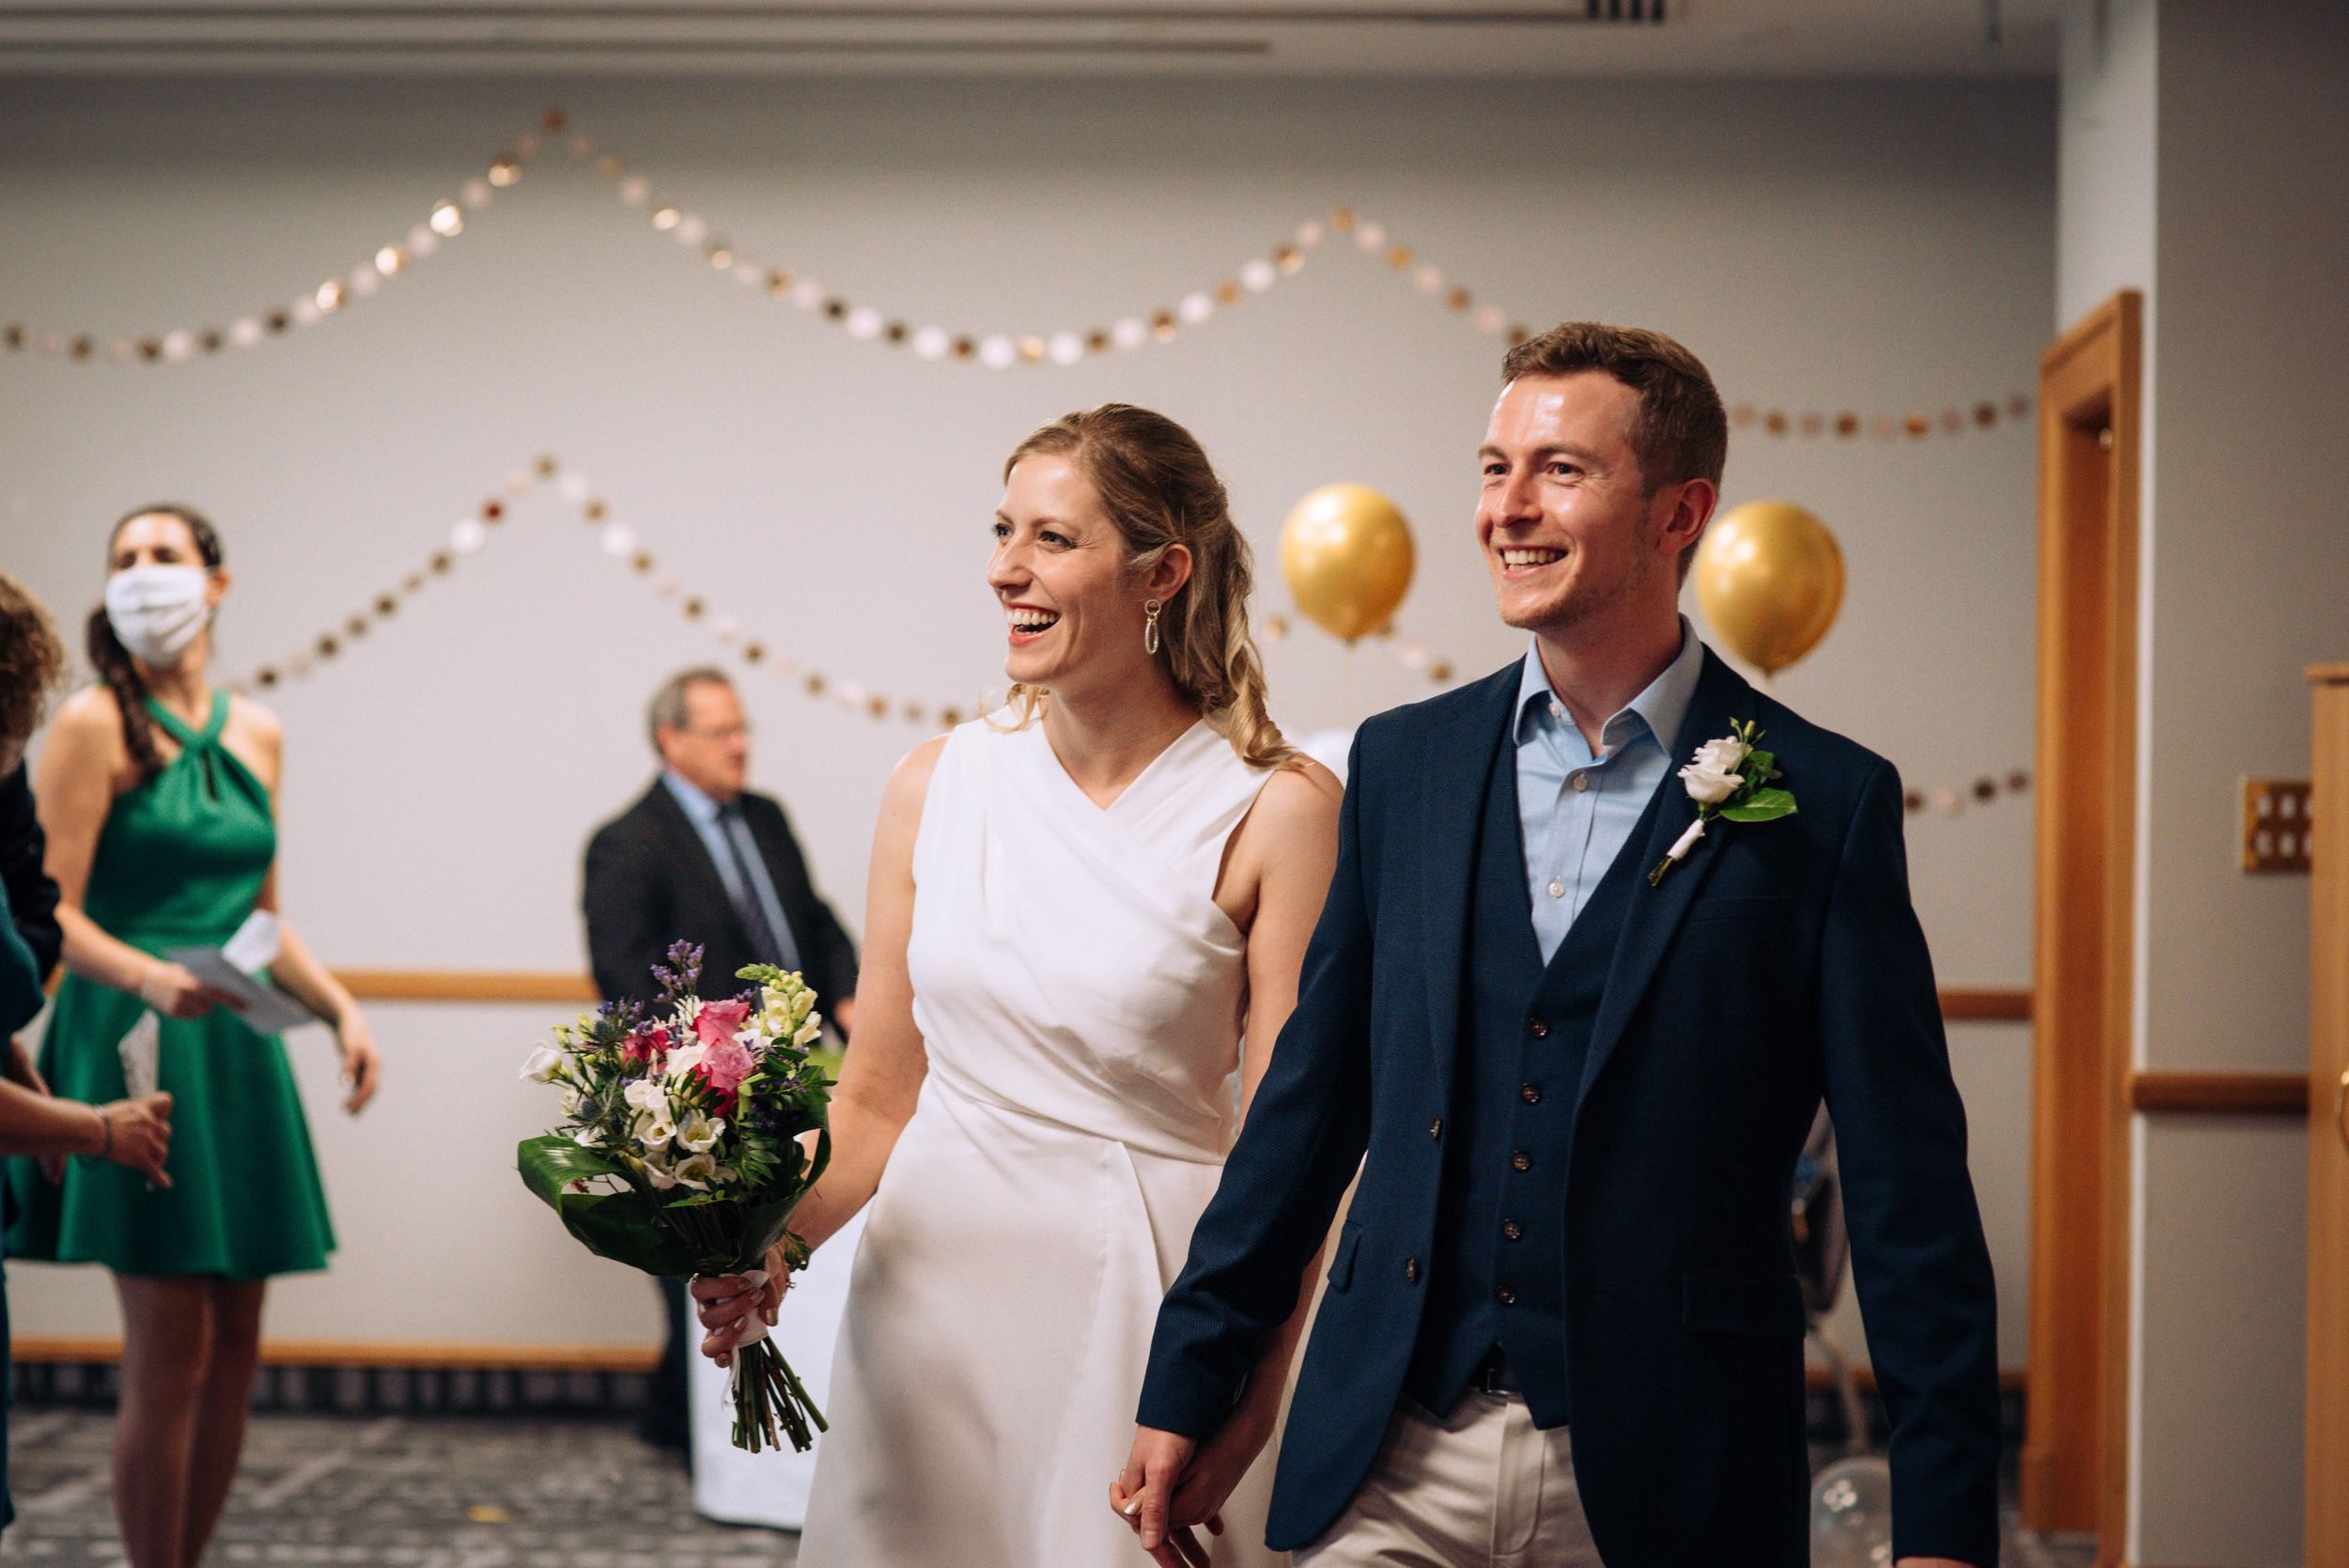 Zara Davis Wedding Photography Pukrup Hall Tewkesbury Gloucestershire Cotswolds Just married